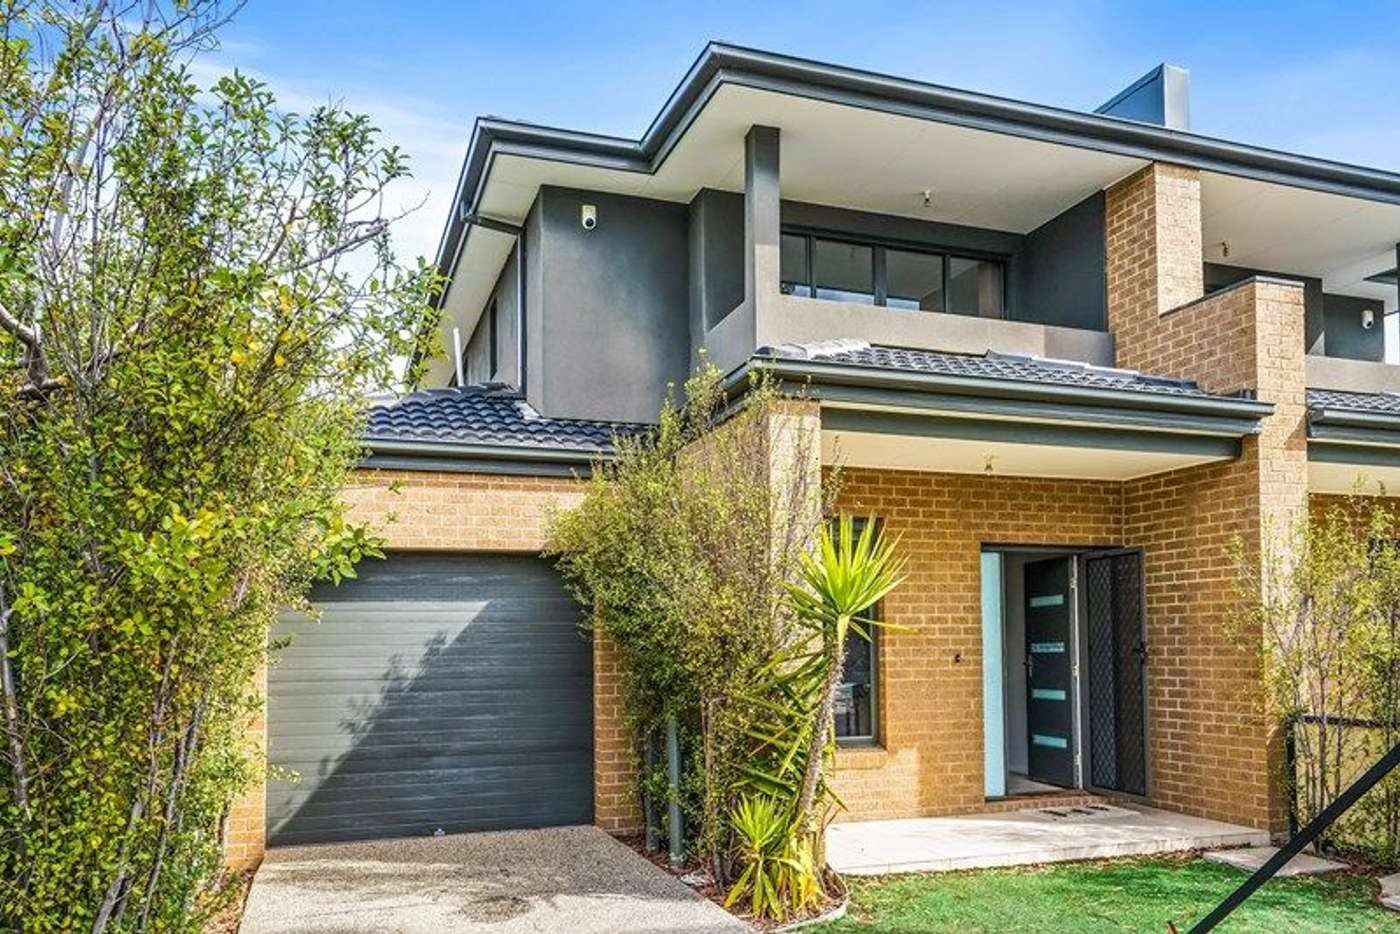 Main view of Homely house listing, 1 Saviour Road, Burnside Heights VIC 3023